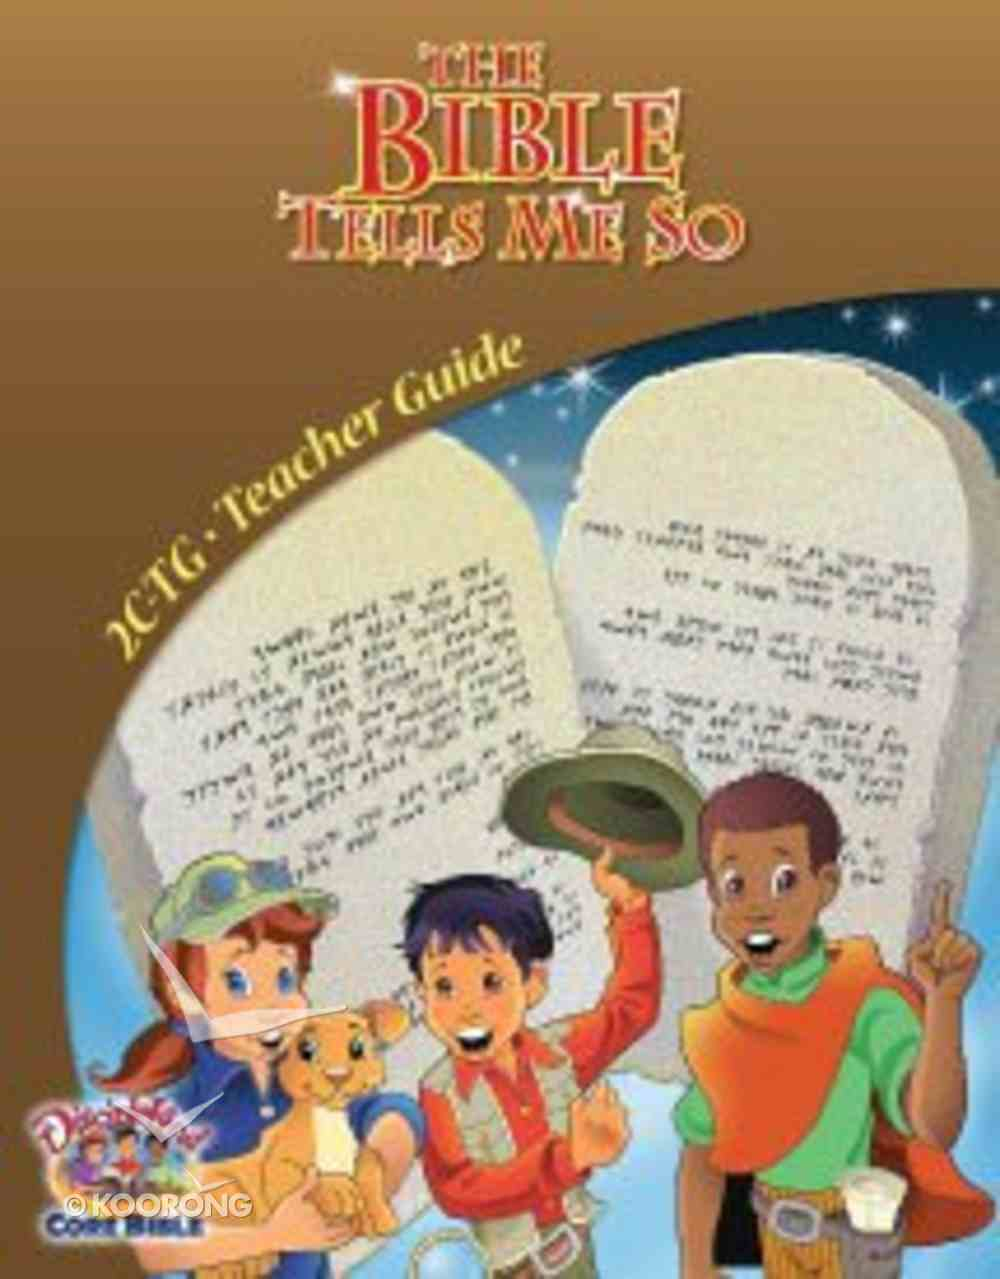 Dlc C2: Treasuring the Bible Teacher's Guide Ages 7-9 (The Bible Tells Me So) (Discipleland Level 2, Ages 7-9, Qtrs Abcd Series) Paperback